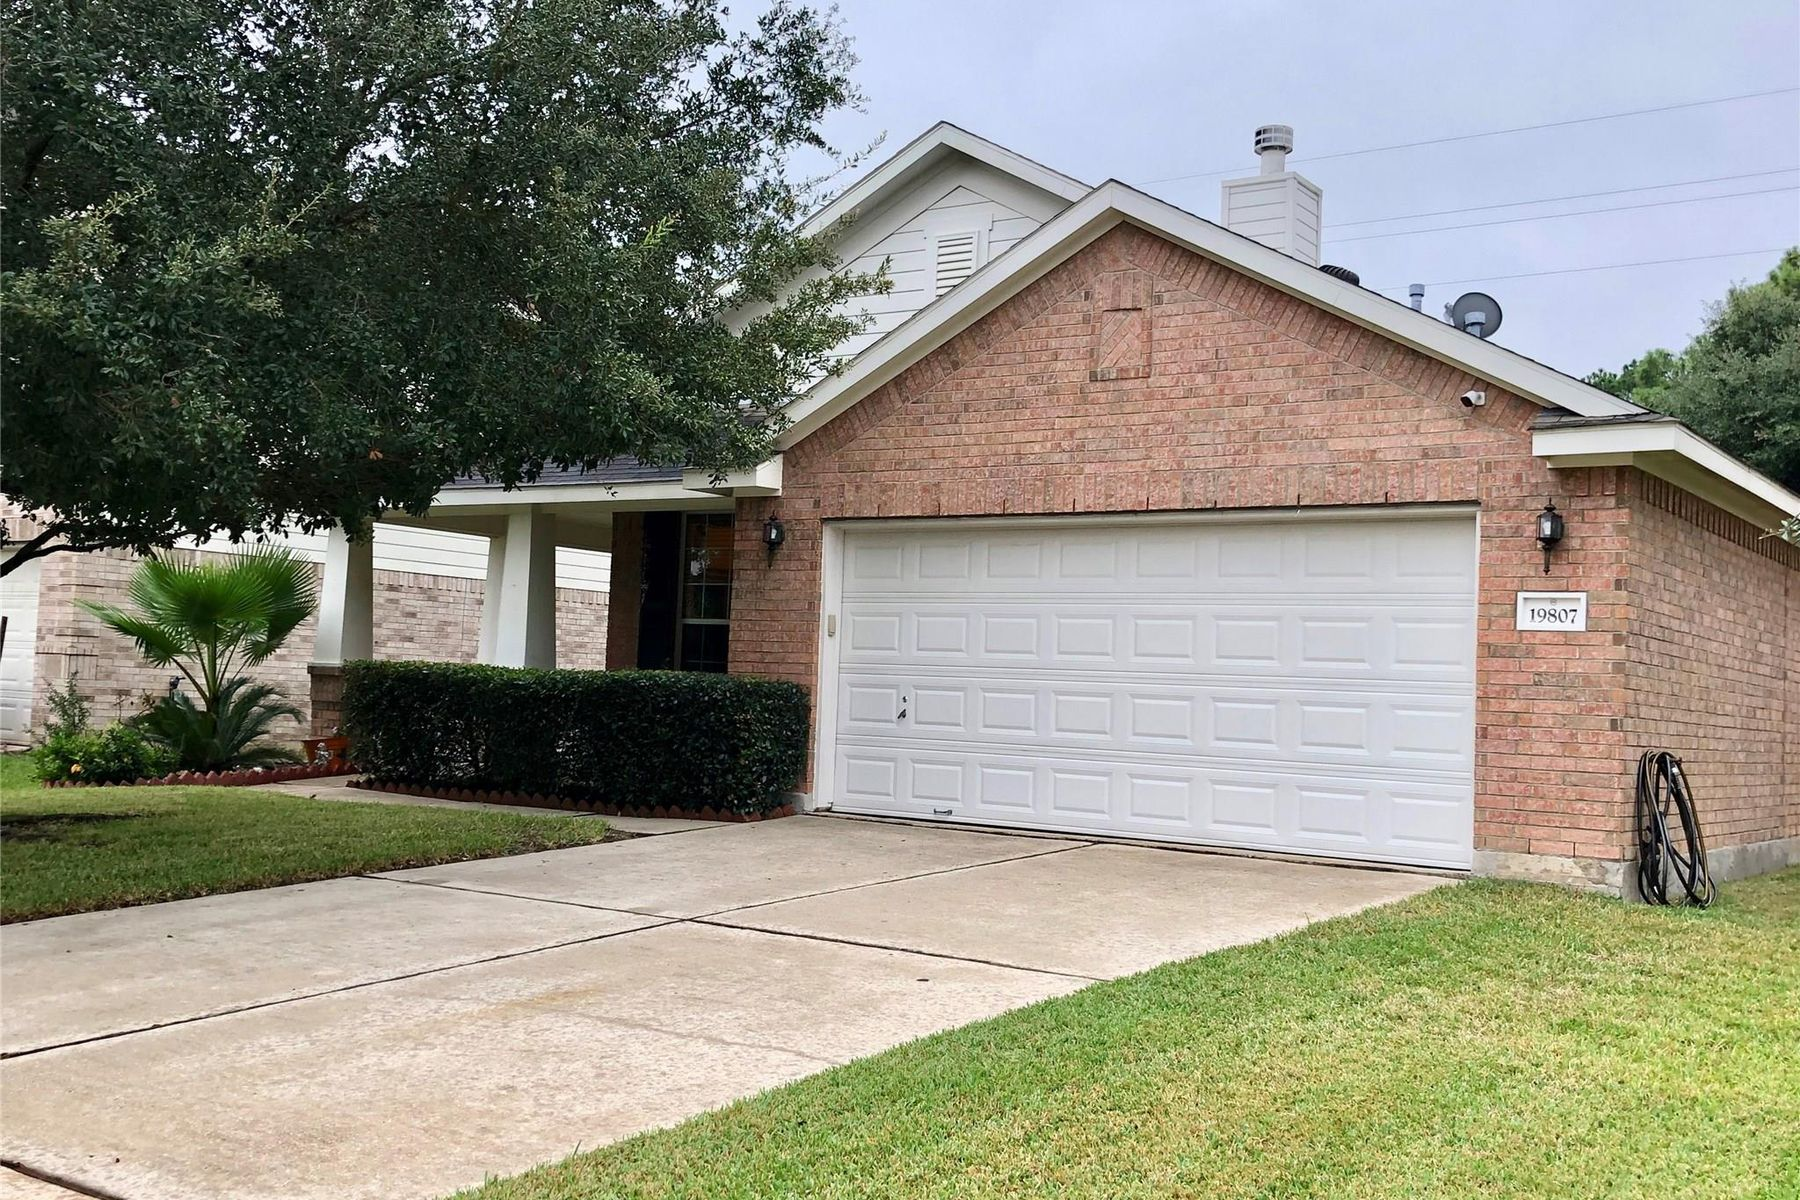 Single Family Homes for Sale at 19807 N Villages Of Bridgestone Lane Spring, Texas 77379 United States